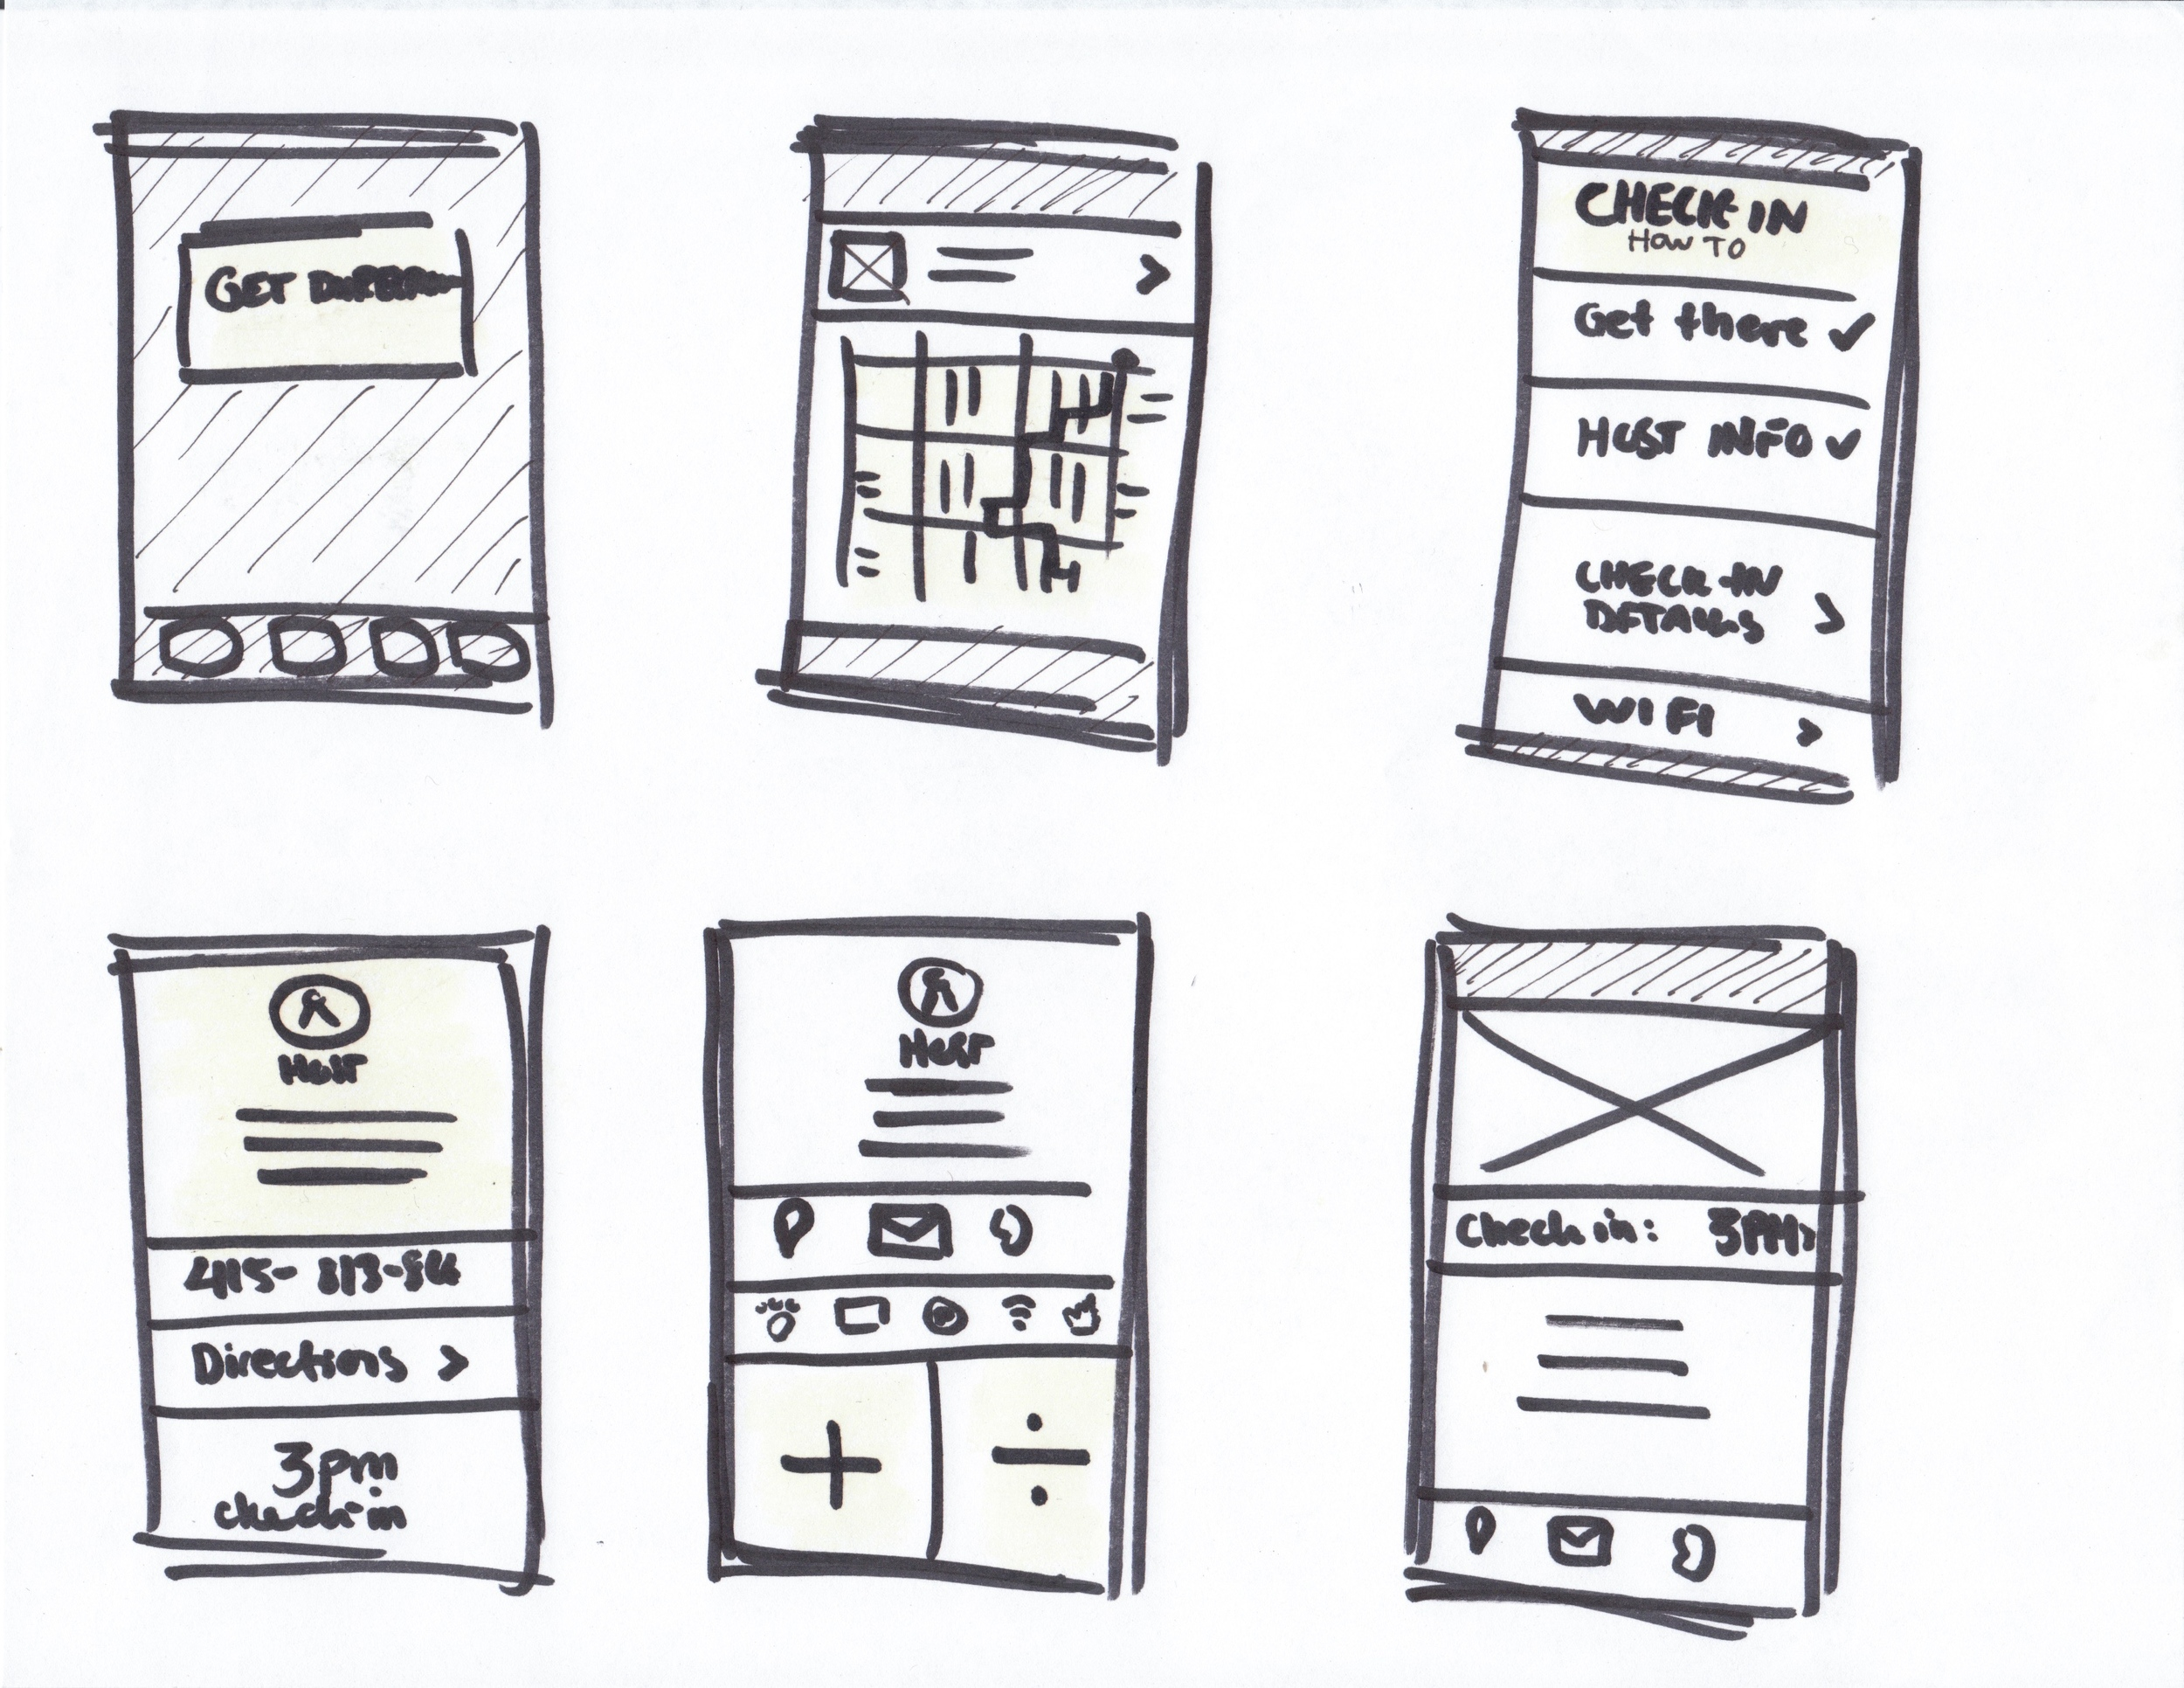 Quick sketching of 6 different ways the UI could look if designing this feature.